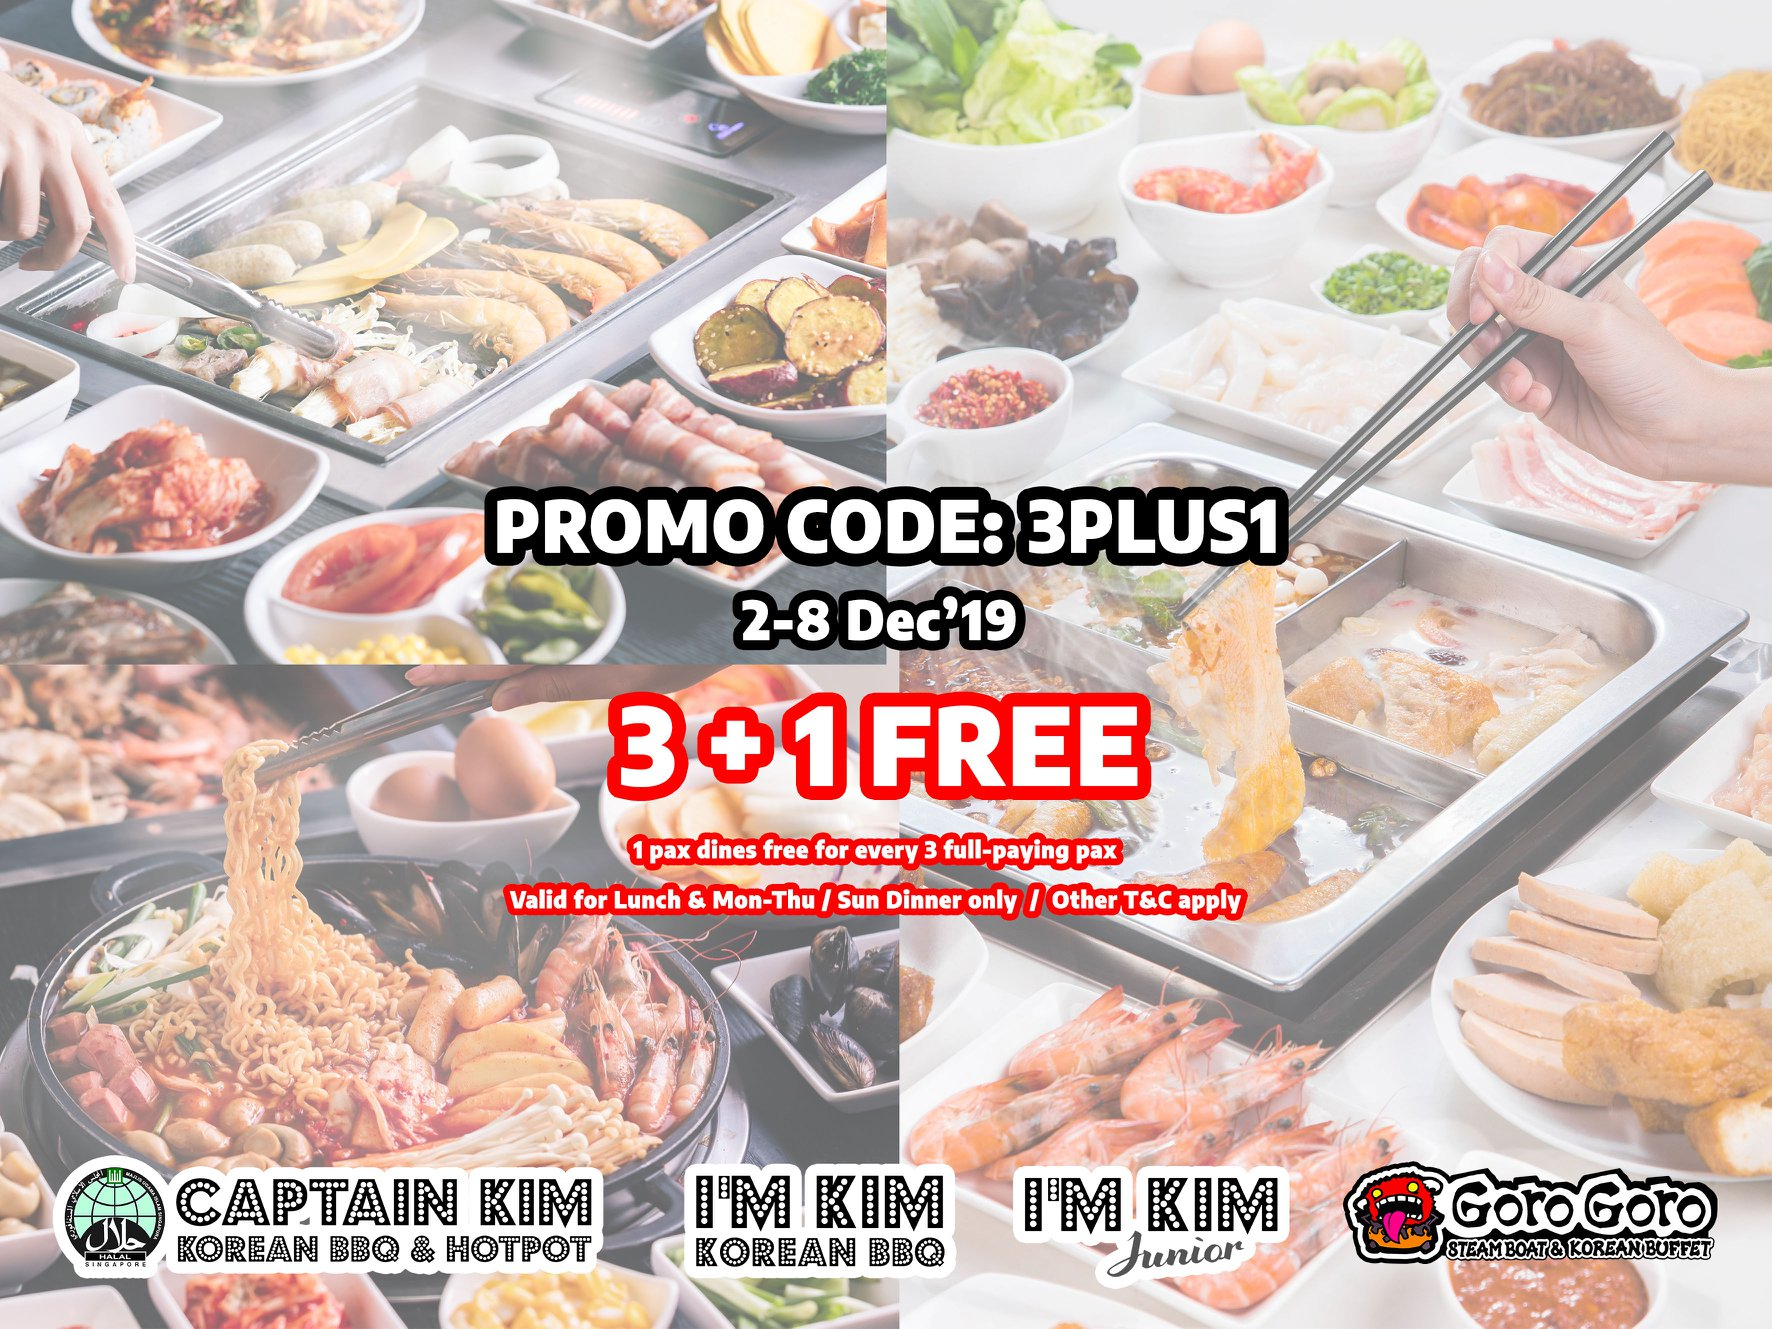 GoroGoro Steamboat & Korean Buffet Singapore 3 + 1 FREE Promotion 2-8 Dec 2019 | Why Not Deals & Promotions